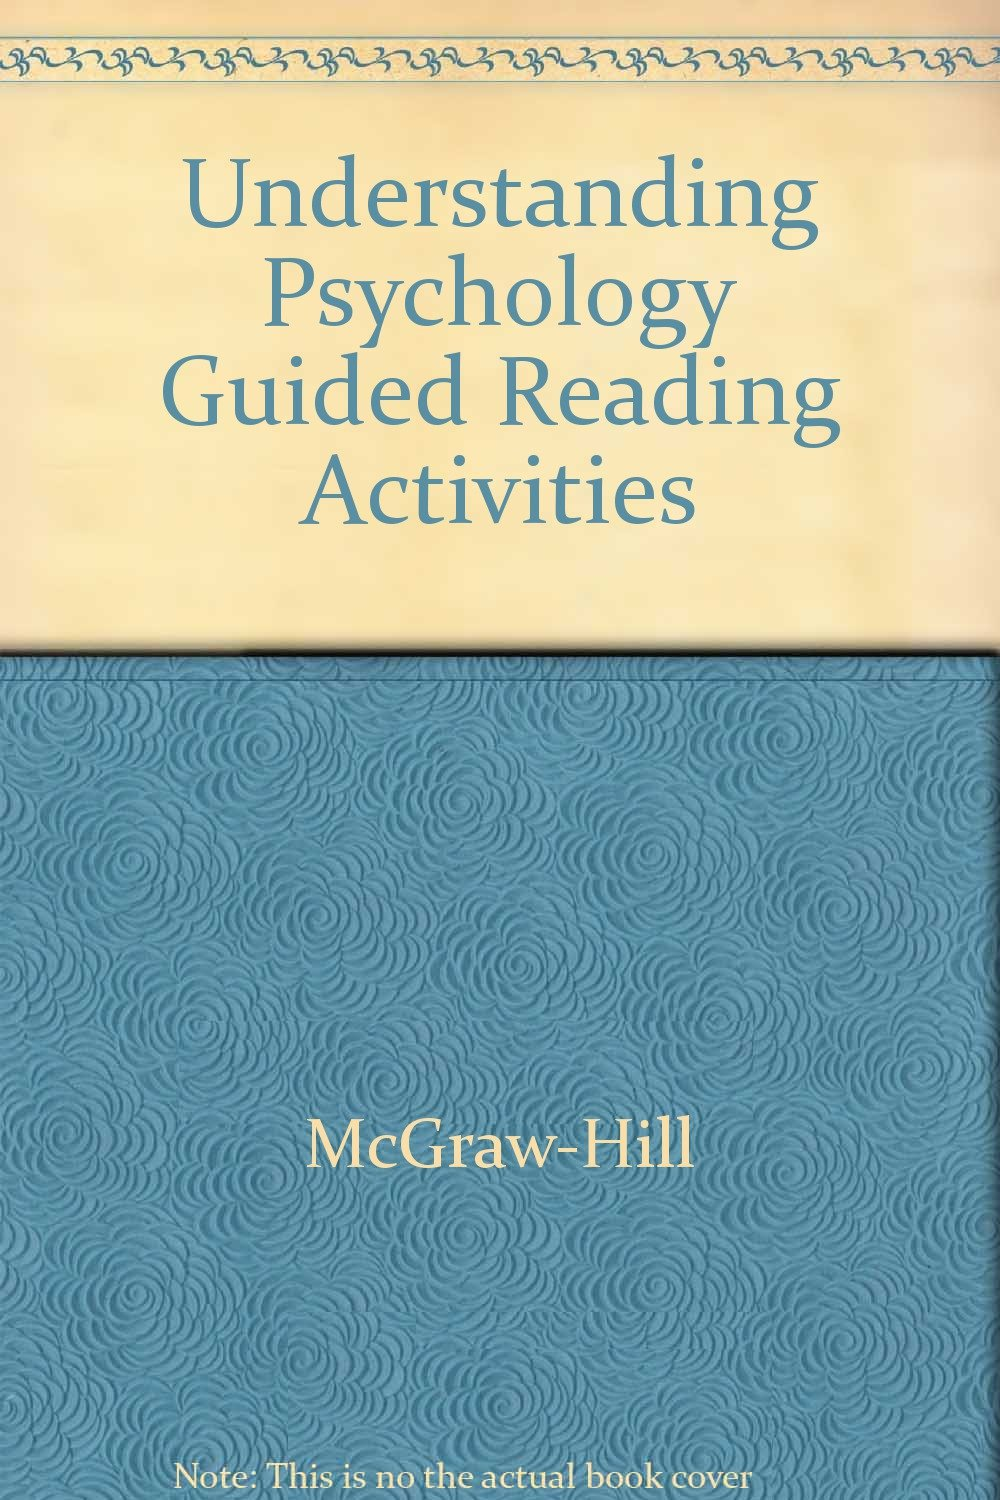 understanding psychology guided reading activities mcgraw hill rh amazon com Guided Reading Printables Guided Reading Groups